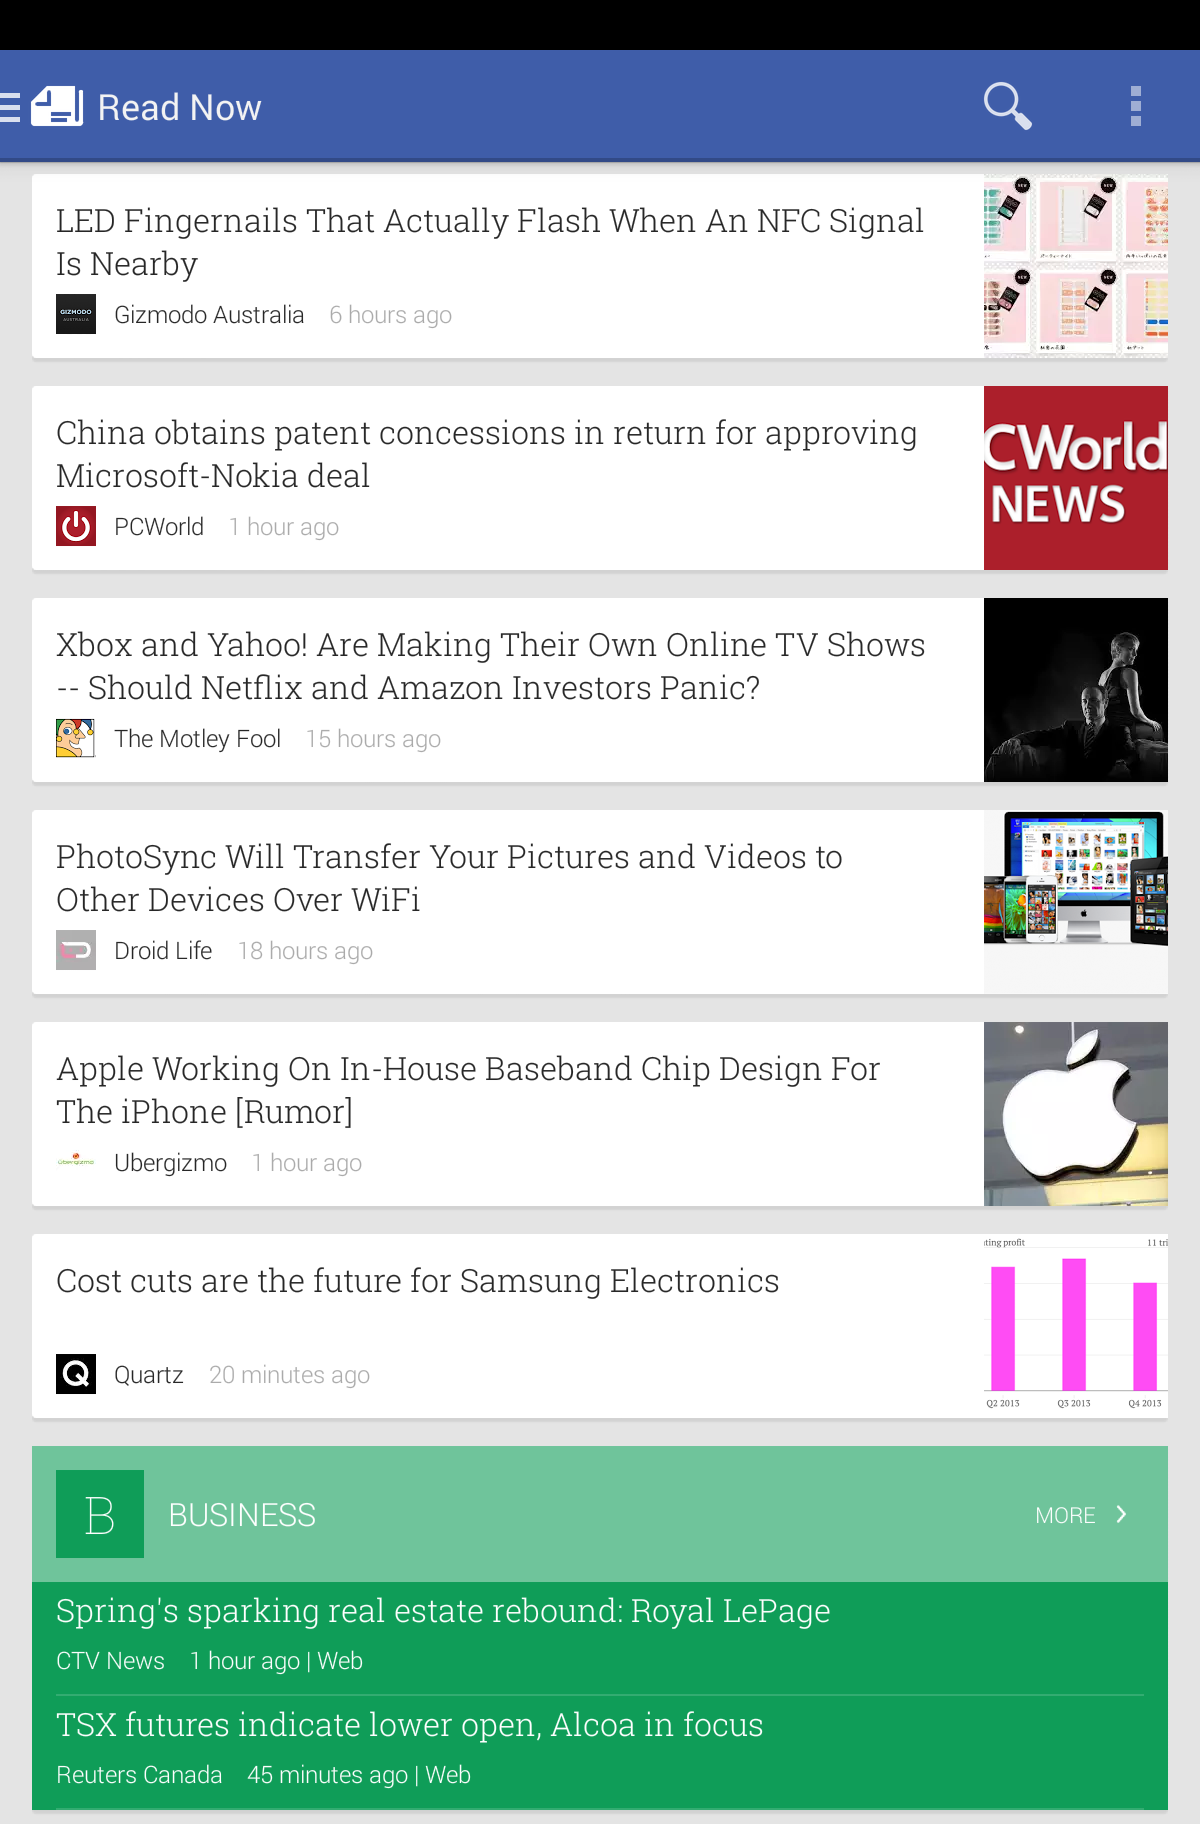 News that Doesn't Flip: A Quick Look at Google Play